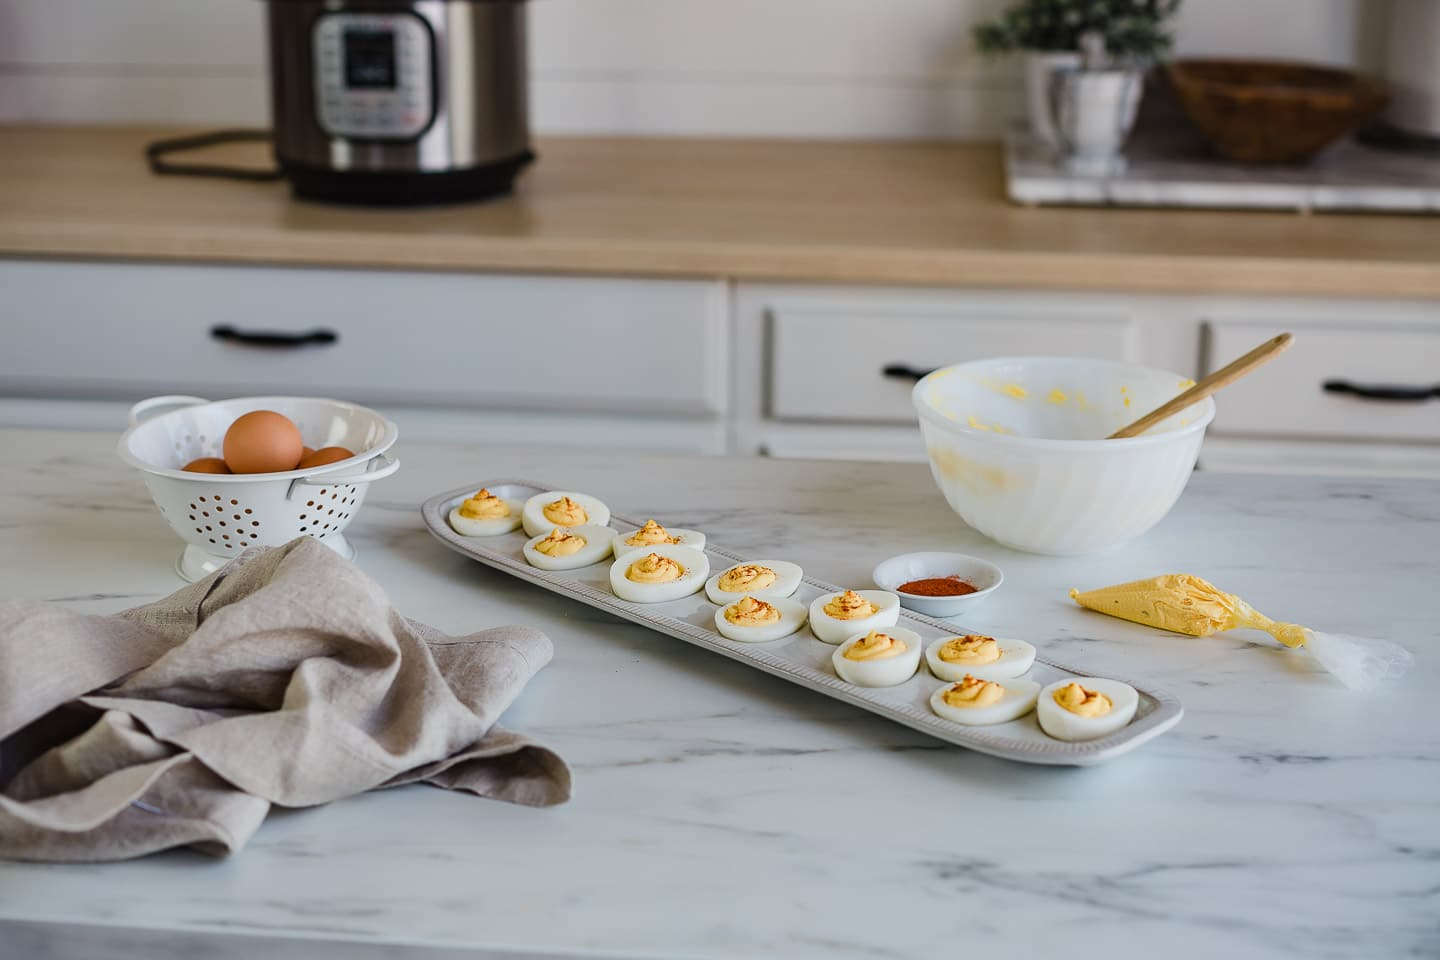 deviled eggs on counter